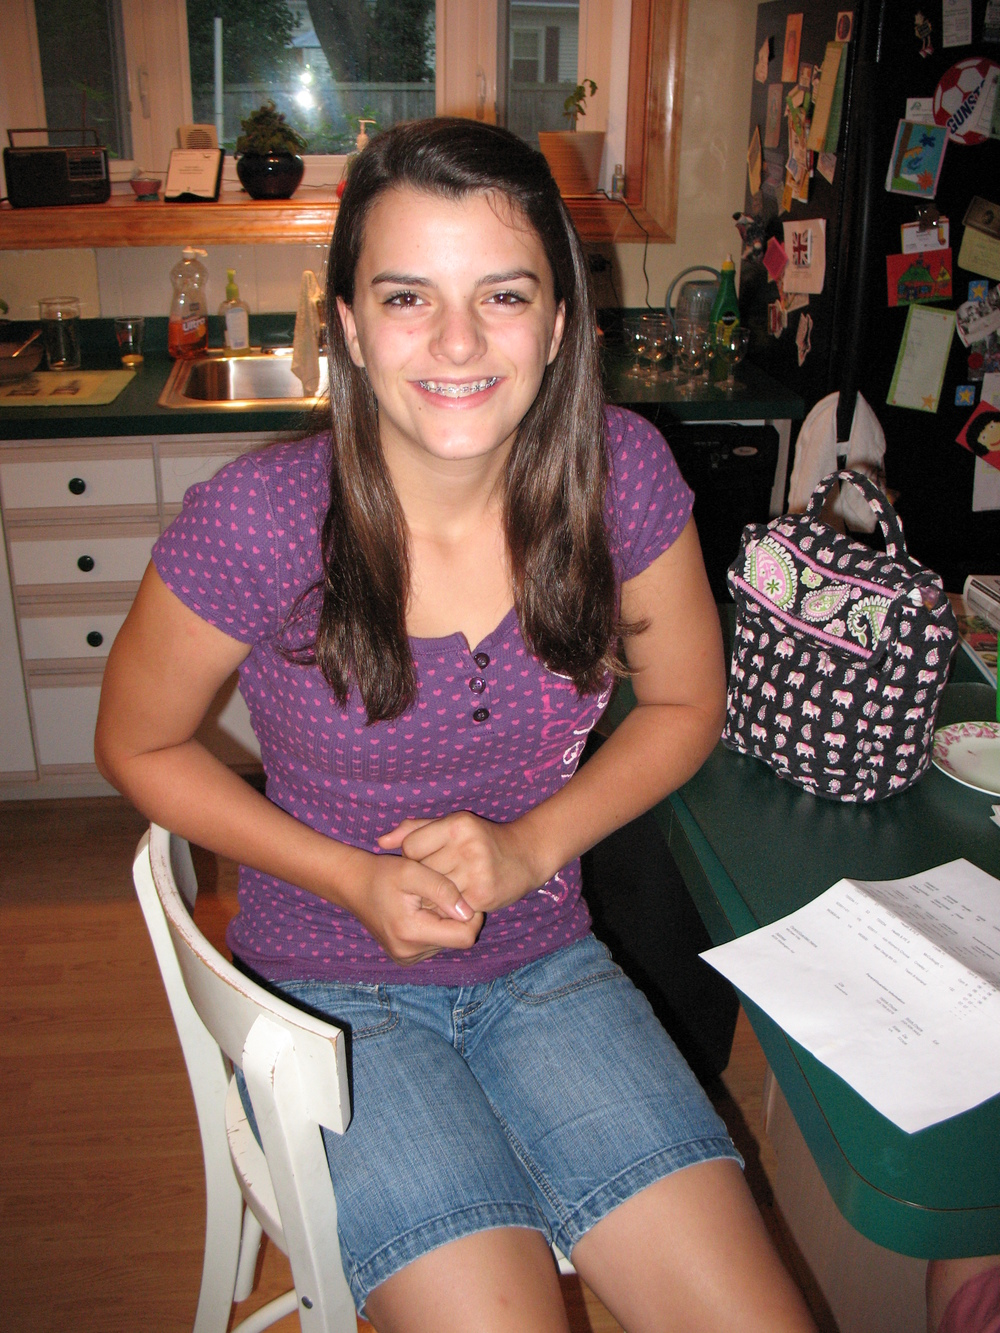 My extremely awkward first day of 8th grade picture--thanks Dad!